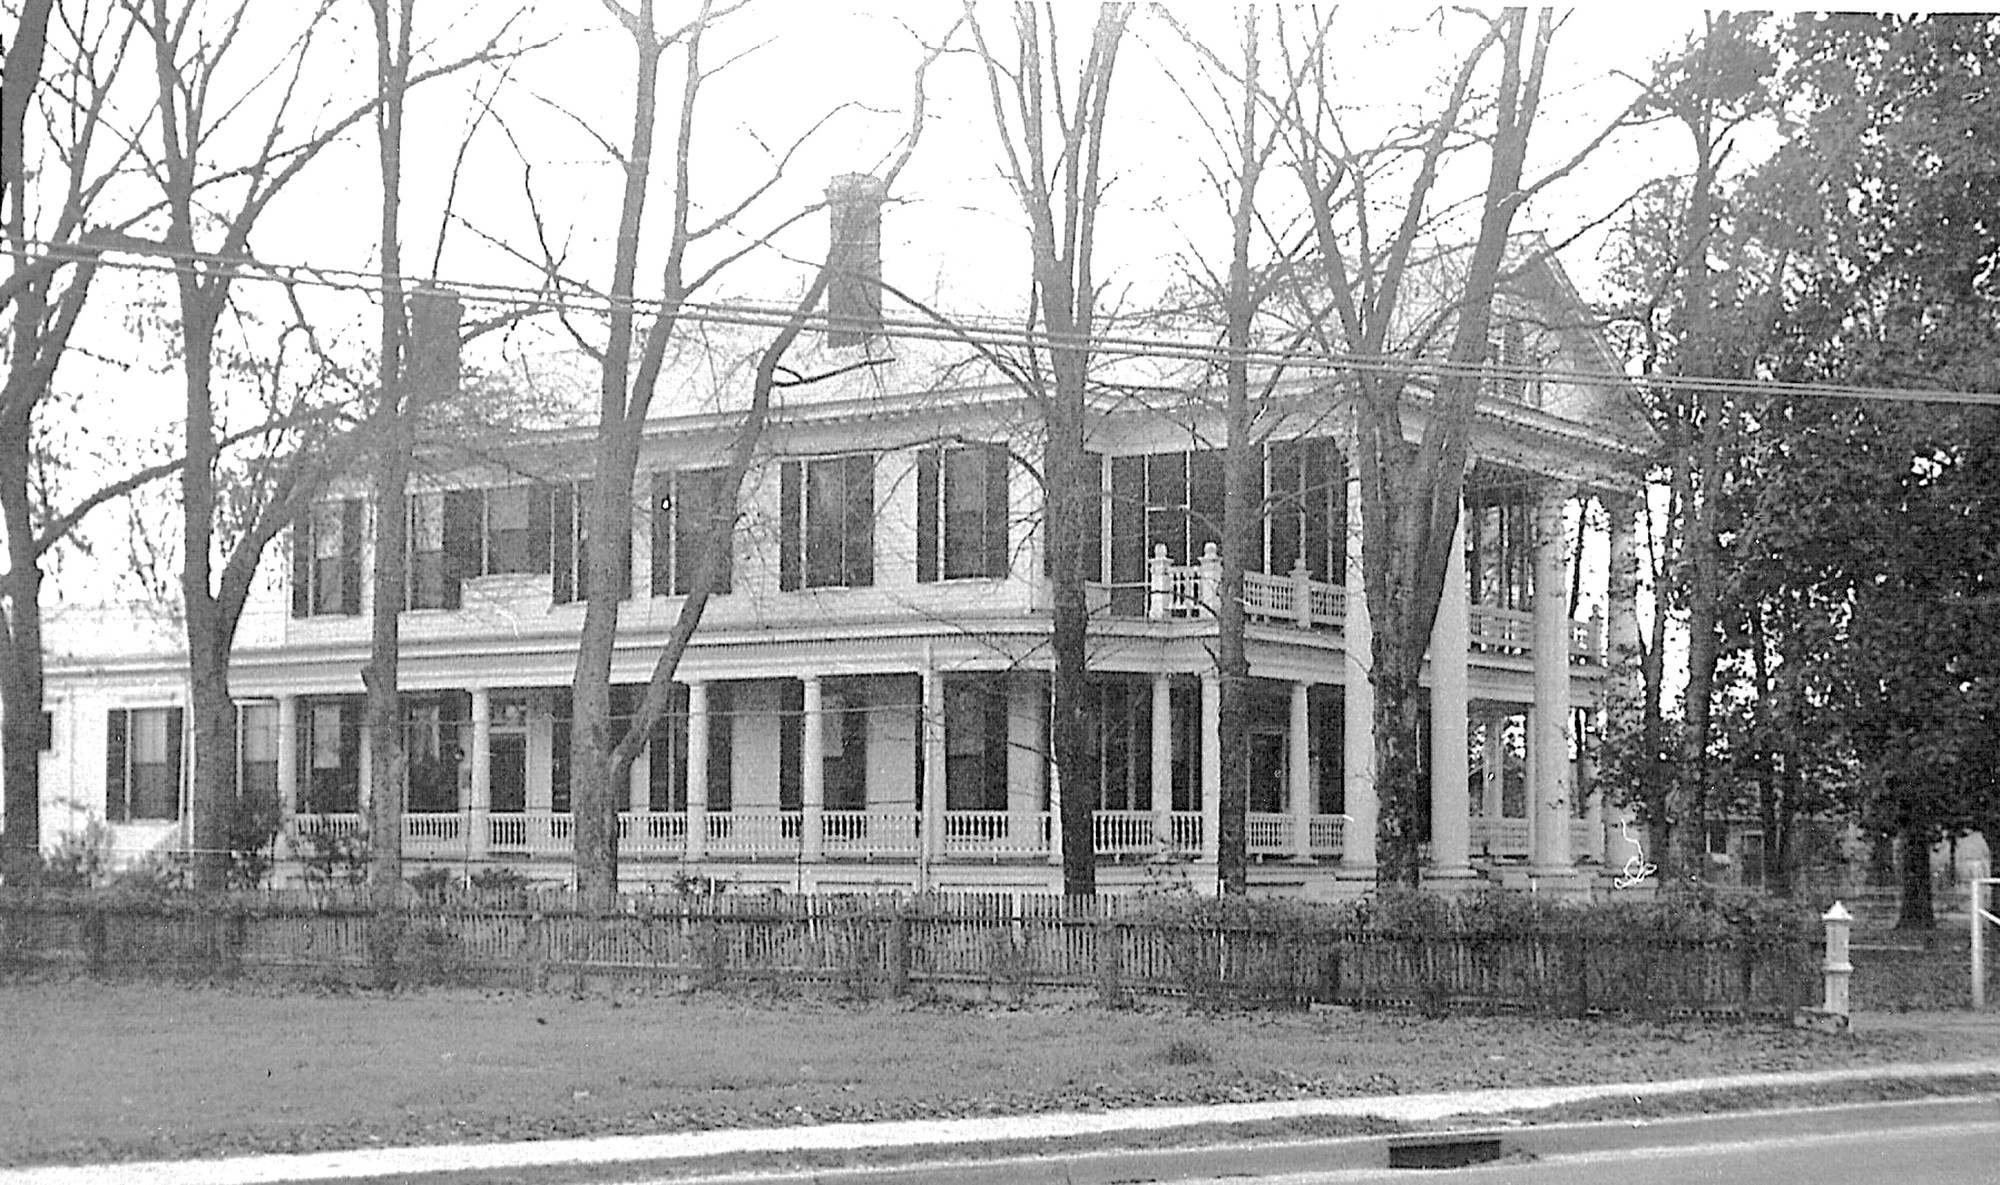 Thomas Wilson House once located on Broad Street.